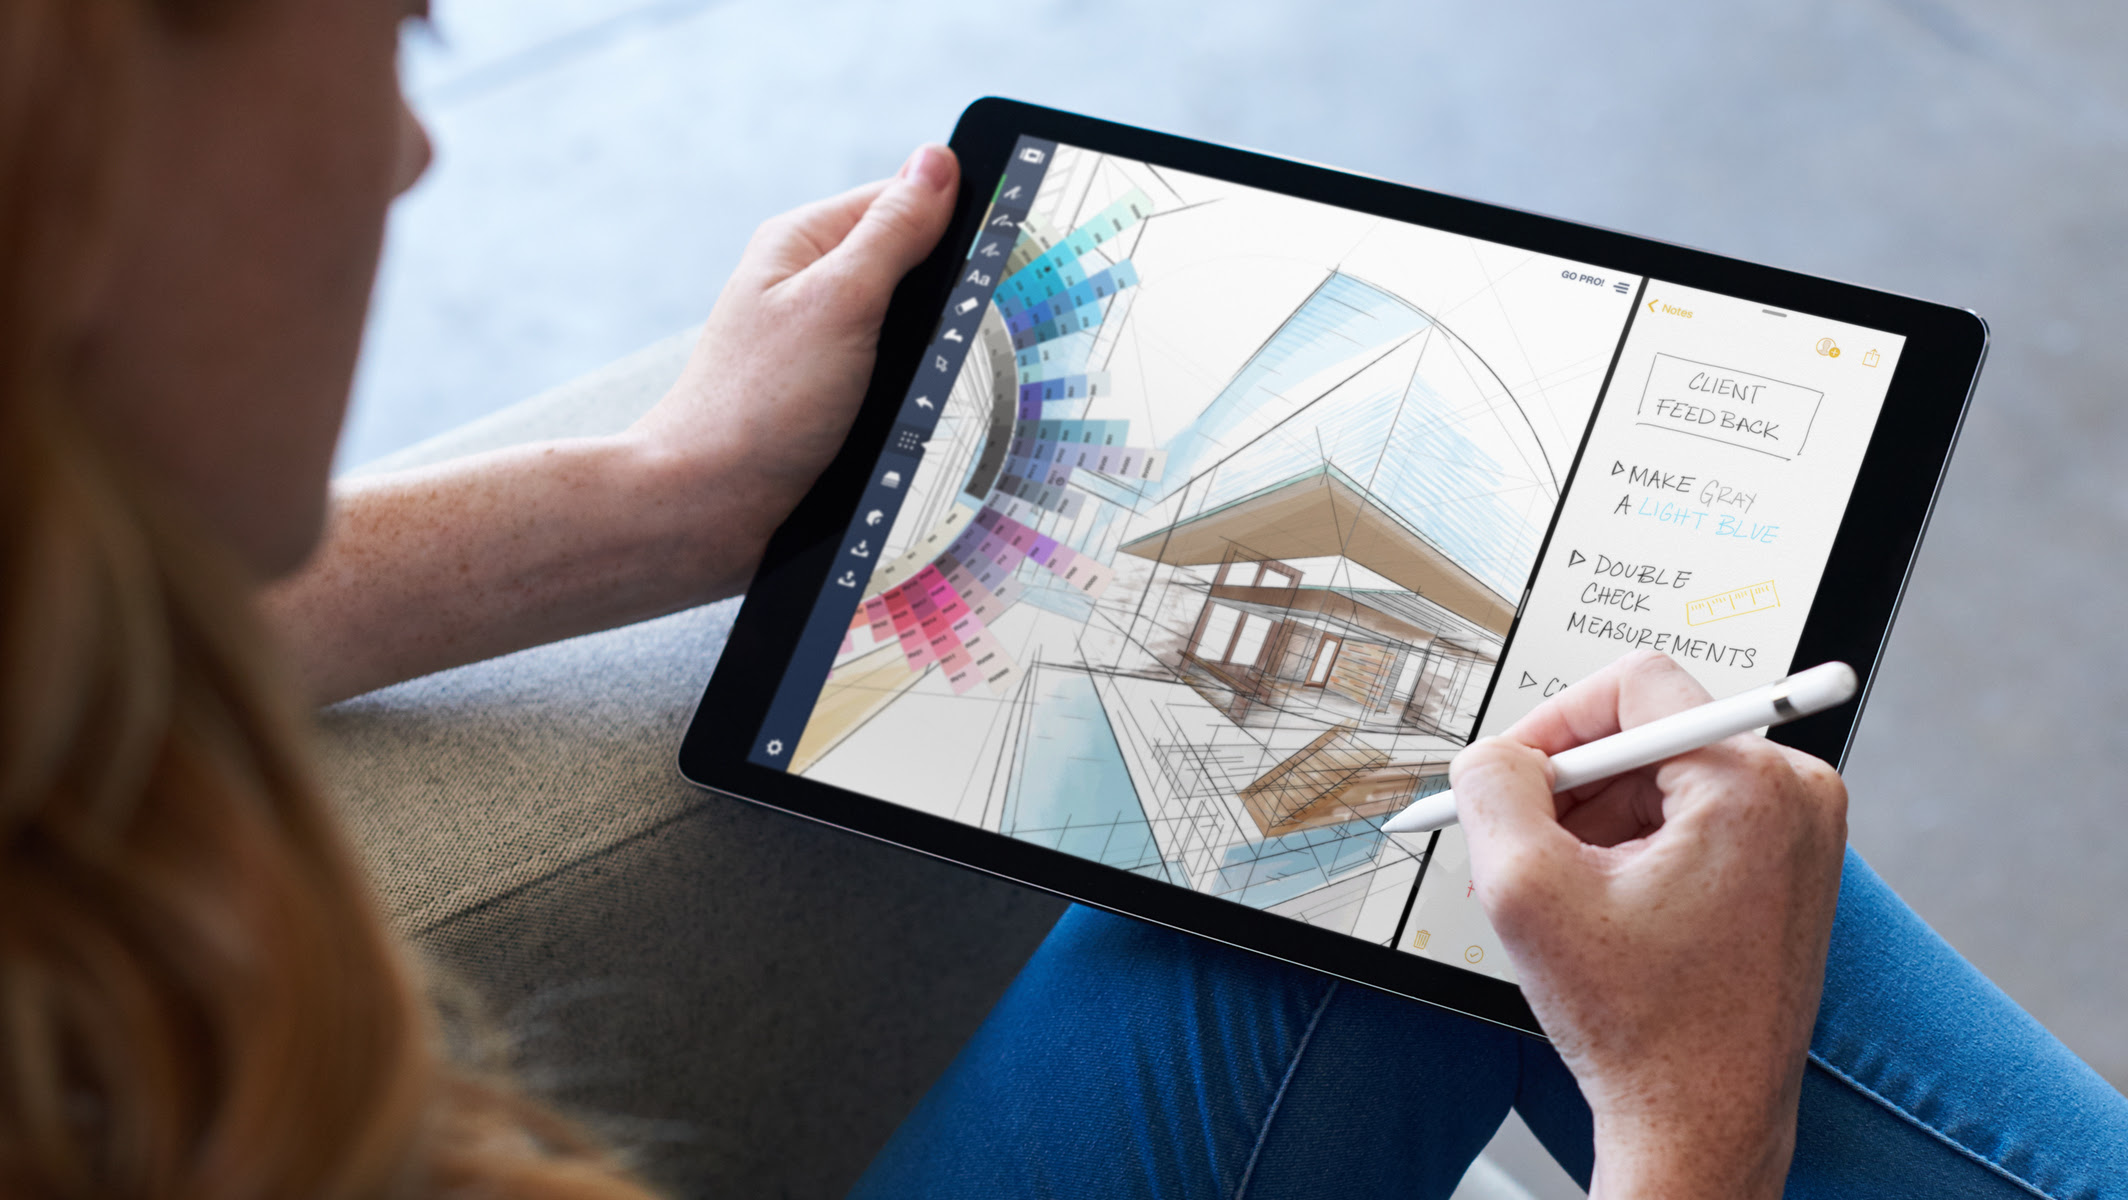 Multitasking and the Apple Pencil